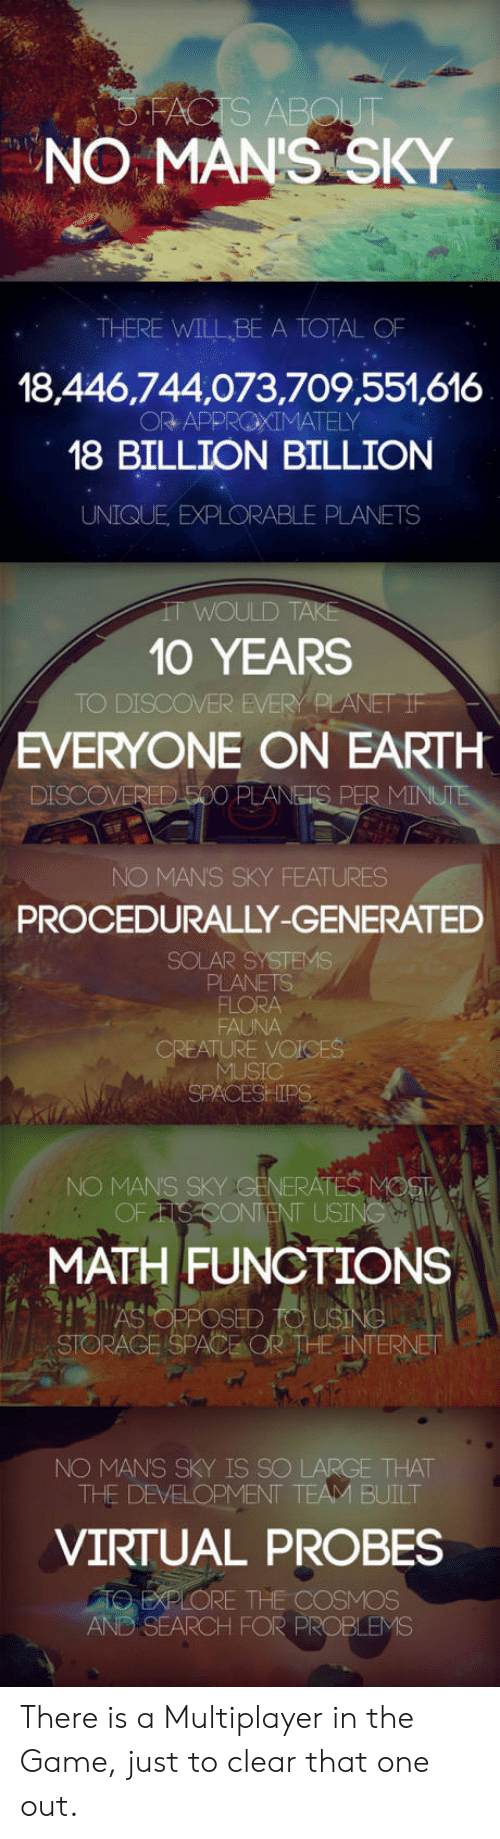 18 Billion: NO MAN'S SKY  THERE WILL BE A TOTAL OF  18,446,744,073,709,551,616  OR APPROXIMATELY  18 BILLION BILLION  UNIQUE, EXPLORABLE PLANETS  10 YEARS  EVERYONE ON EARTH  DI  NO MANS SKY FEATURES  PROCEDURALLY-GENERATED  FLORA  FAUNA  E VO  NO MANS SKY  USI  MATH FUNCTIONS  STORAGE SPACEOR HE  NO MANS SKY IS SO LARGE THAT  THE DEVELOPMENT TEAM BUILT  VIRTUAL PROBES  ORE THE COSMOS  AND SEARCH F There is a Multiplayer in the Game, just to clear that one out.